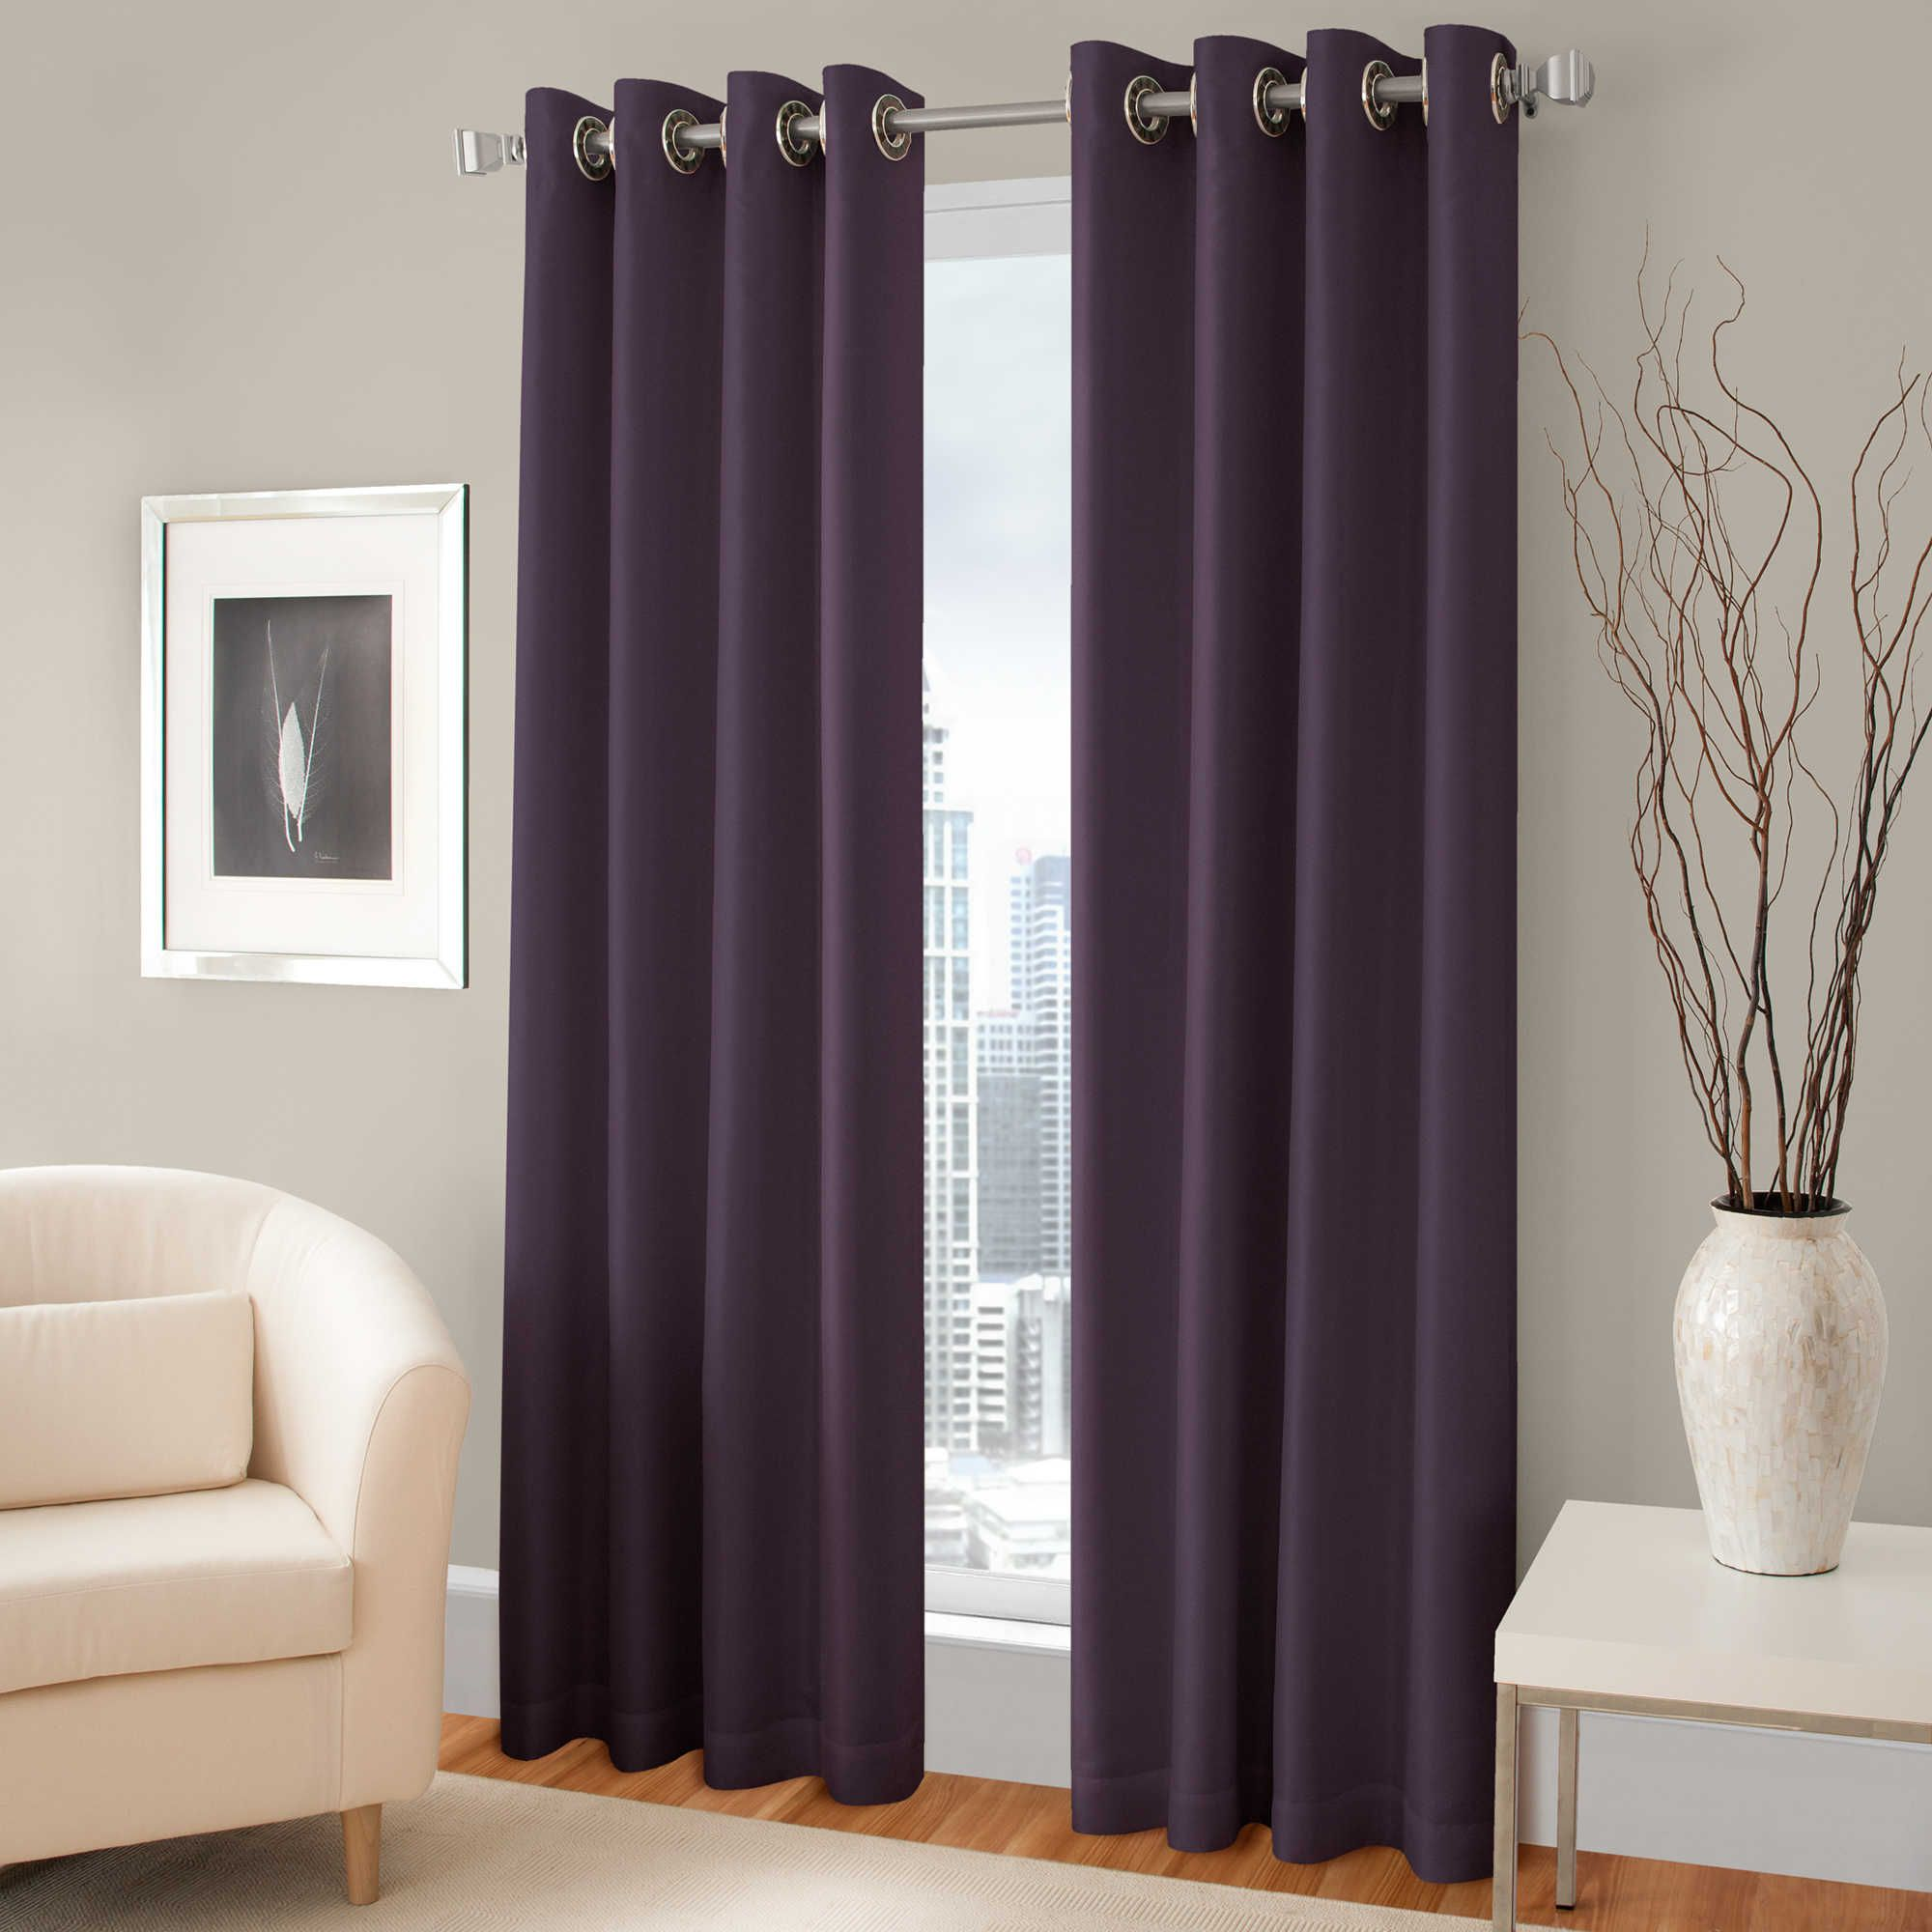 Pretty Purple Room Darkening Curtains With Silver Rods On Gray